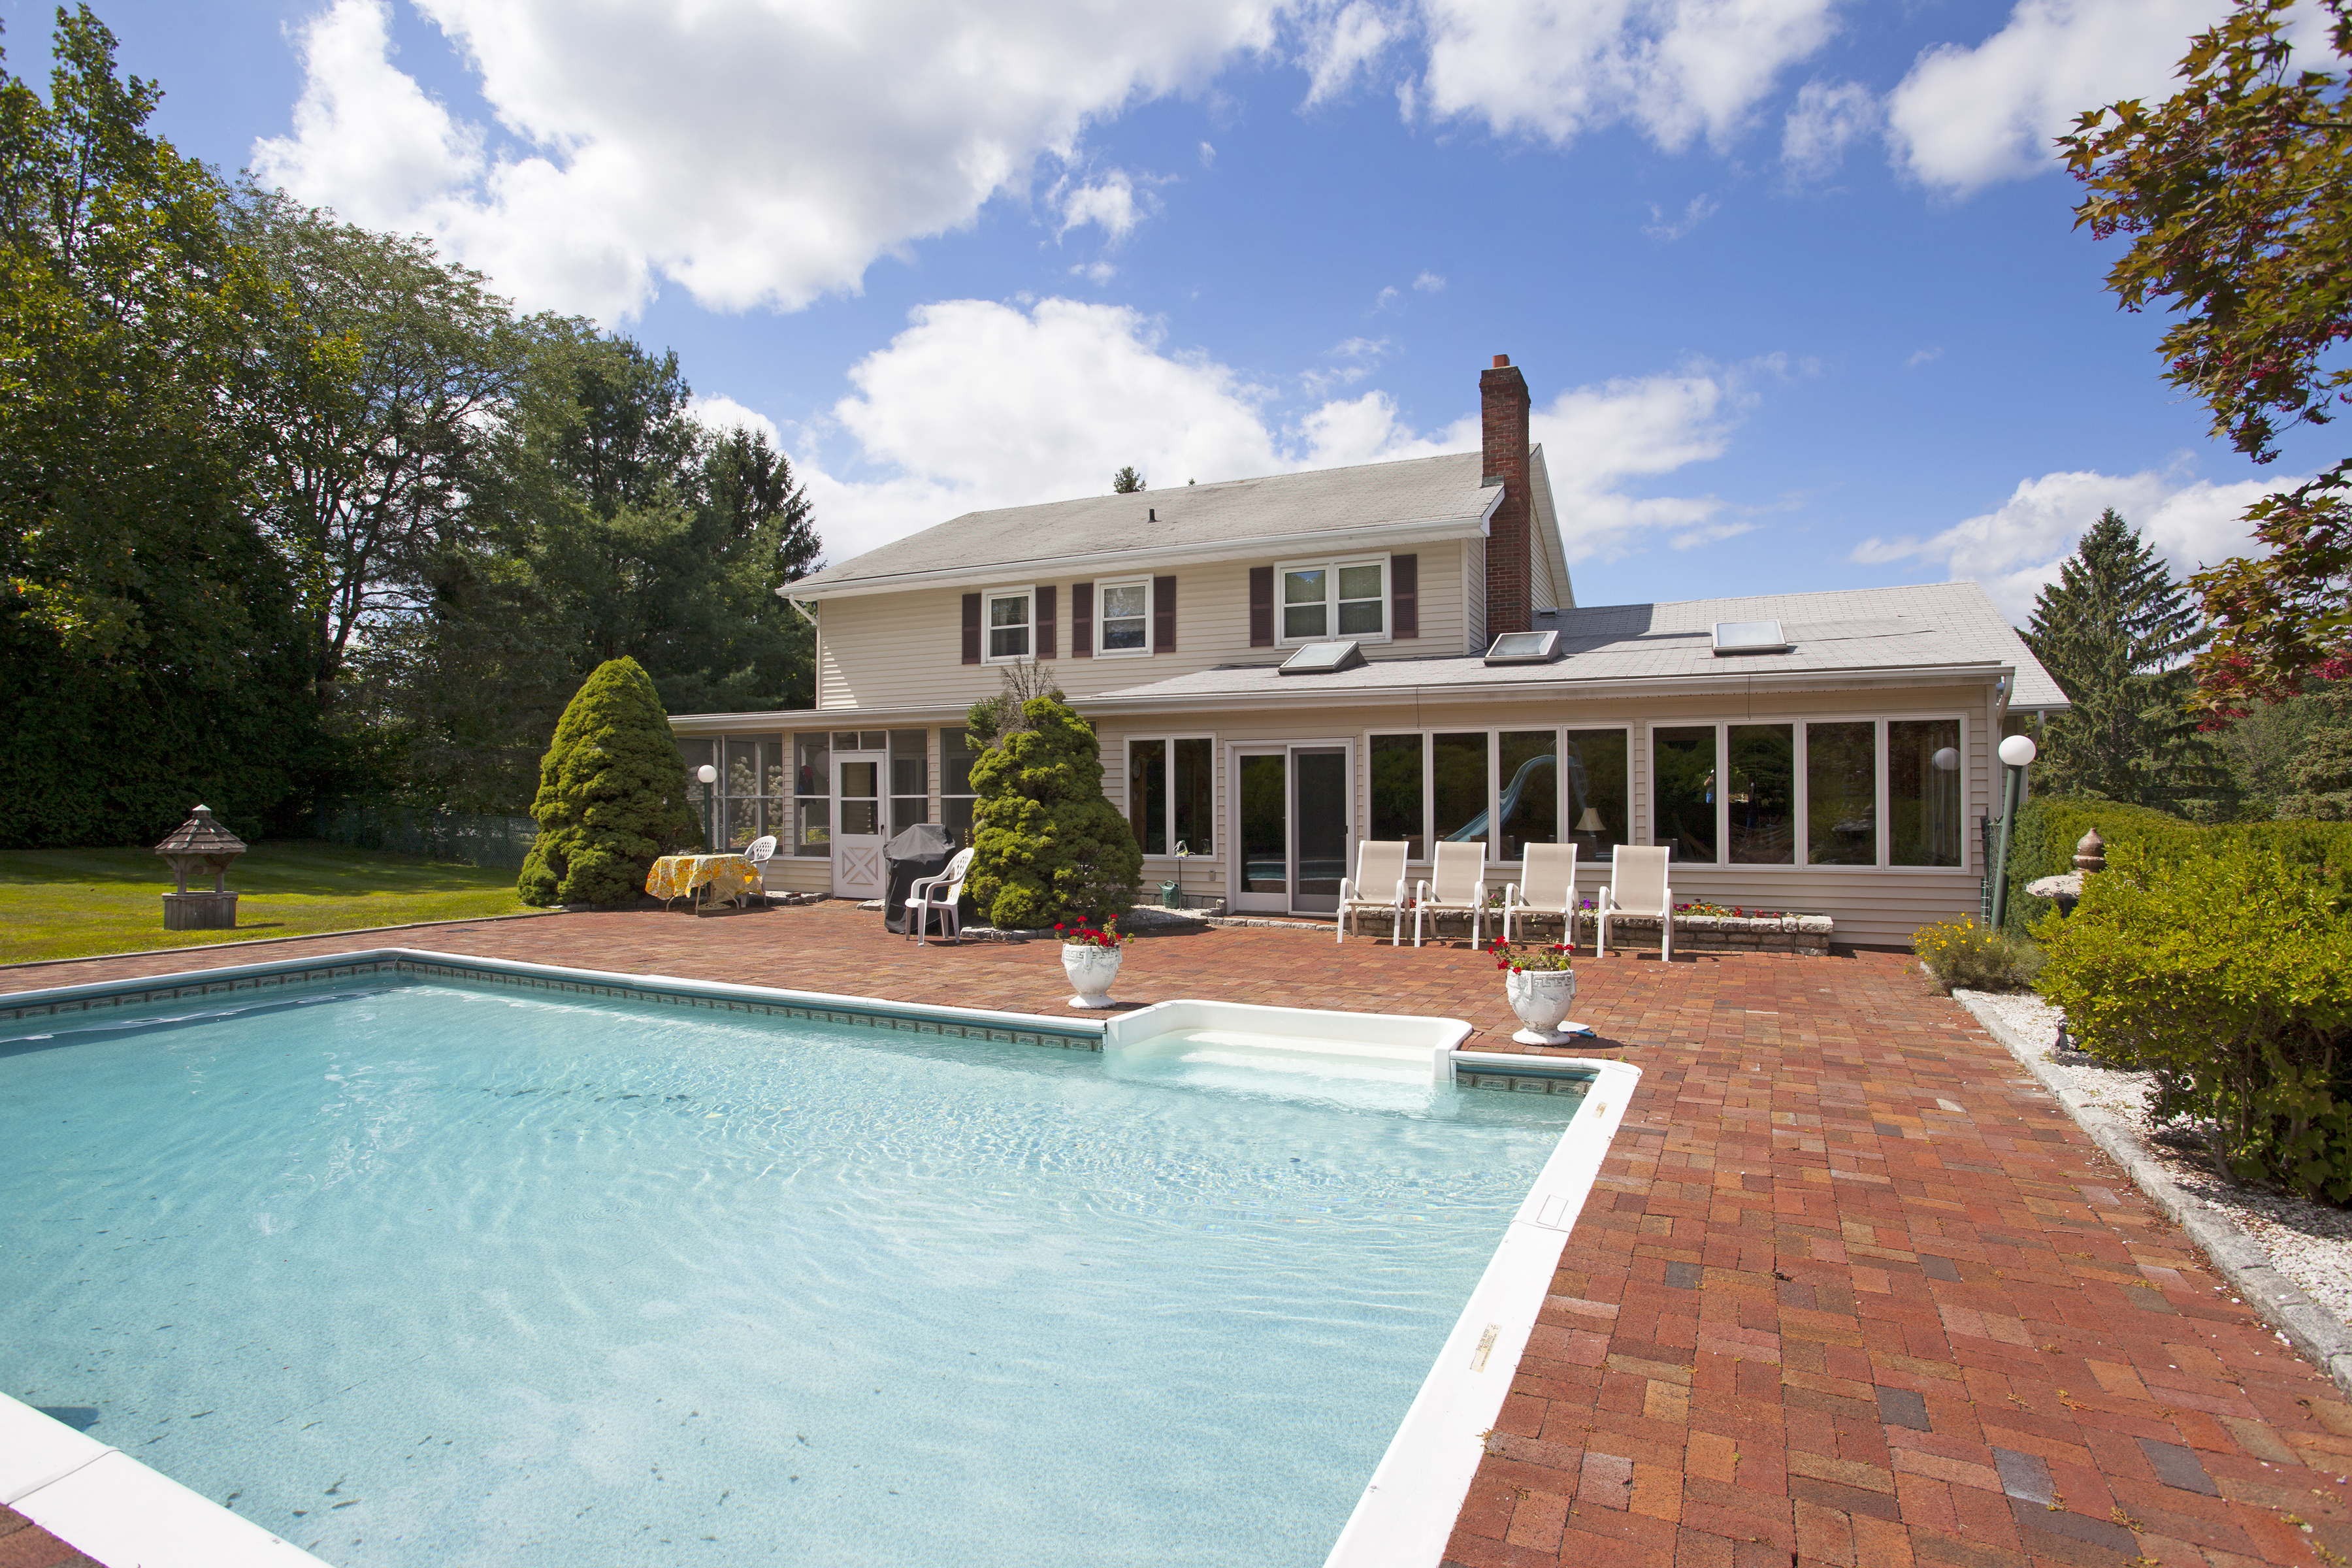 Single Family Home for Sale at Tennis Court And Pool 1 Silver Hill Drive New Fairfield, Connecticut, 06812 United States